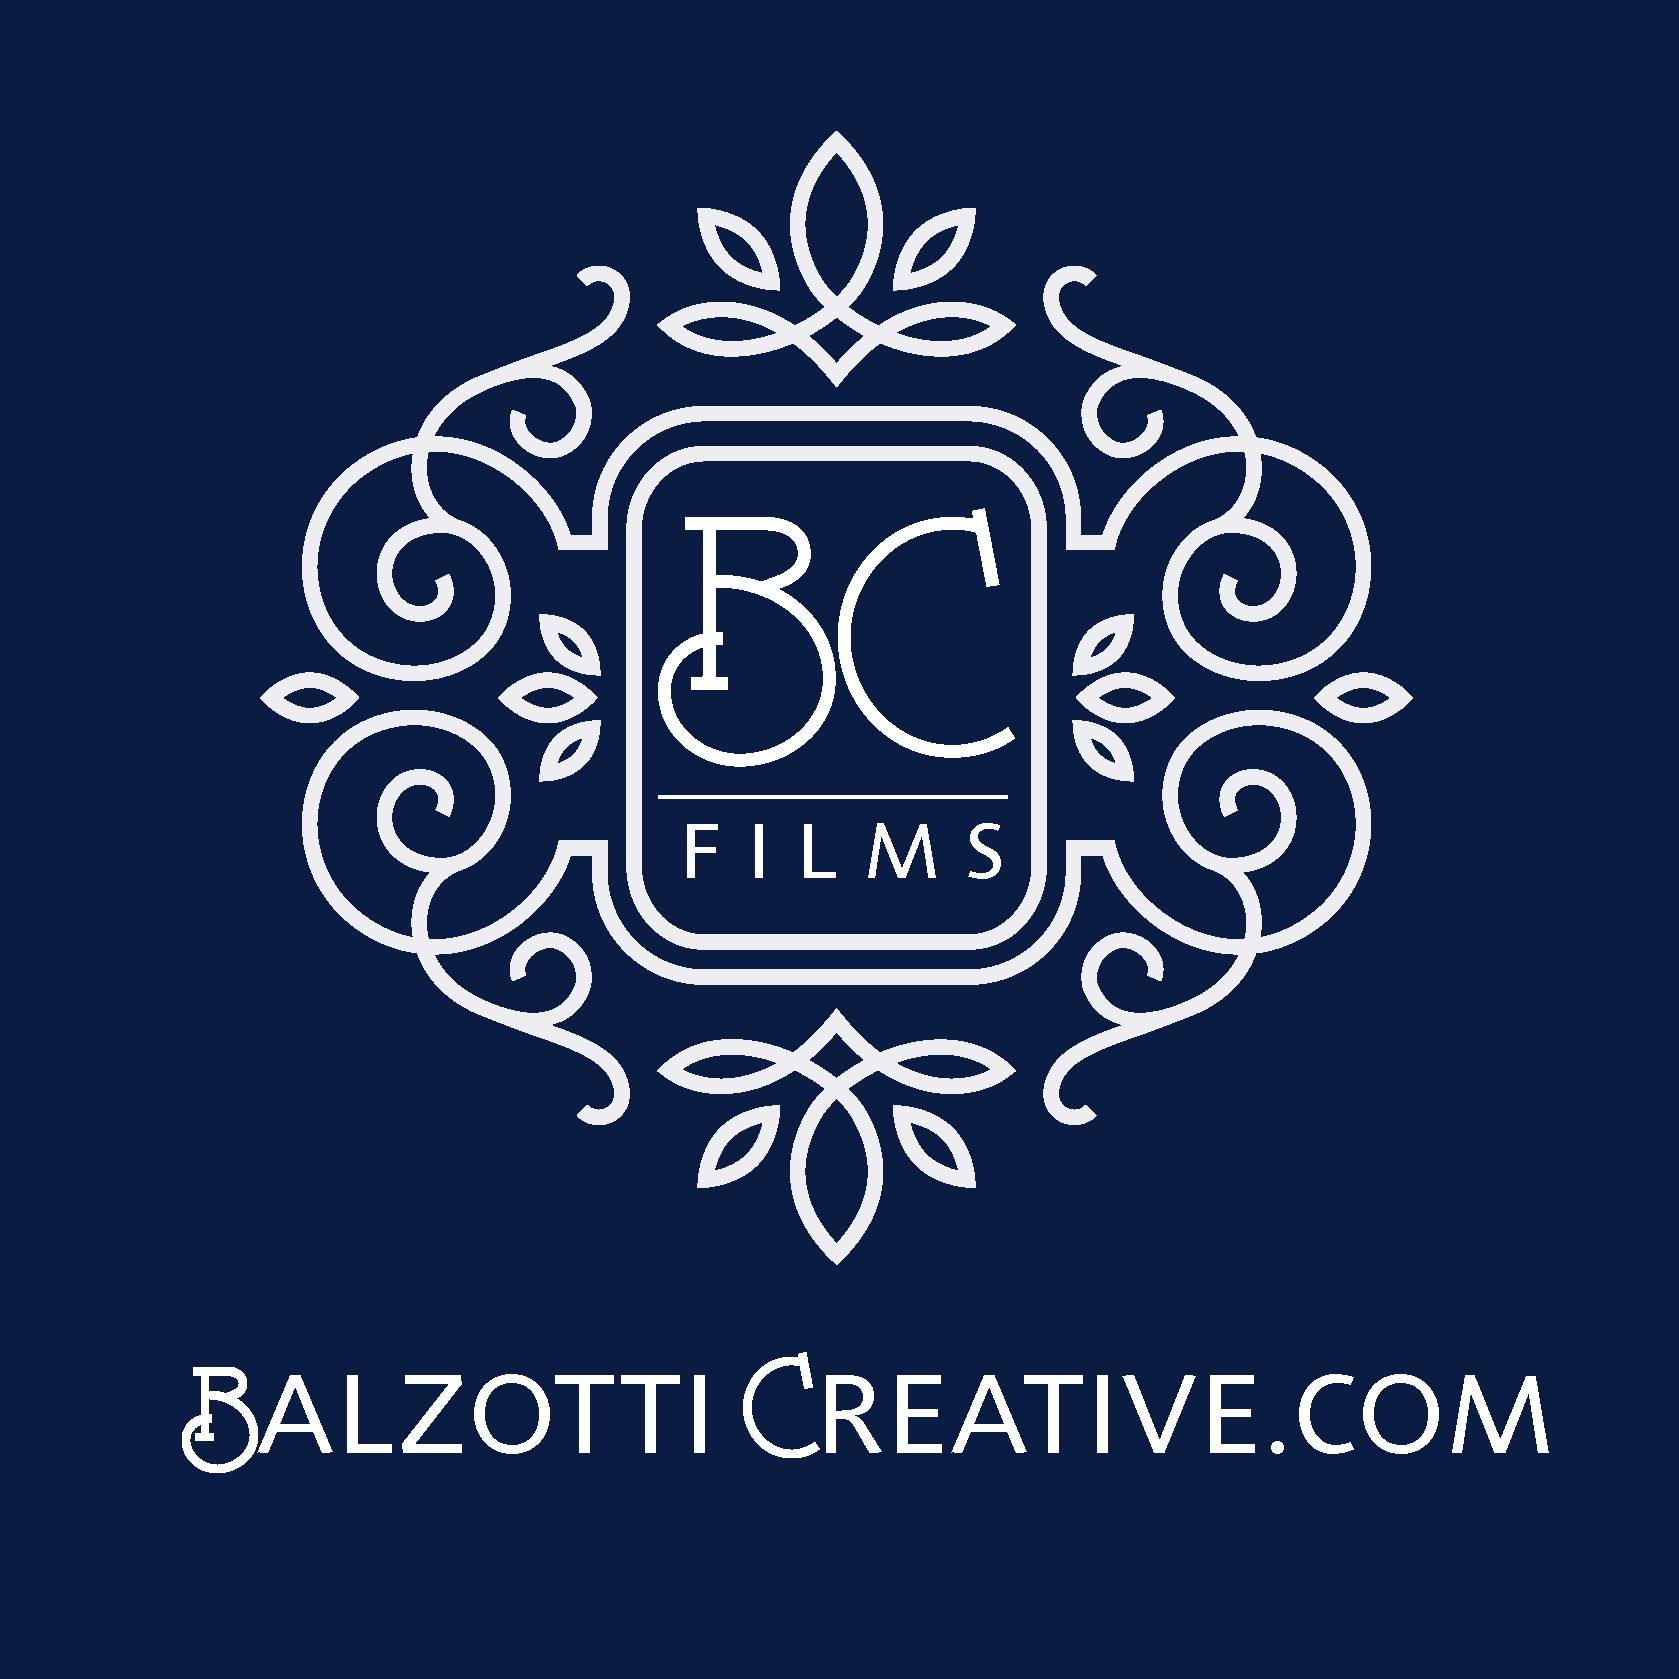 Myrtle Beach Wedding Videographer, Wedding Videos Myrtle Beach, Balzotti Creative